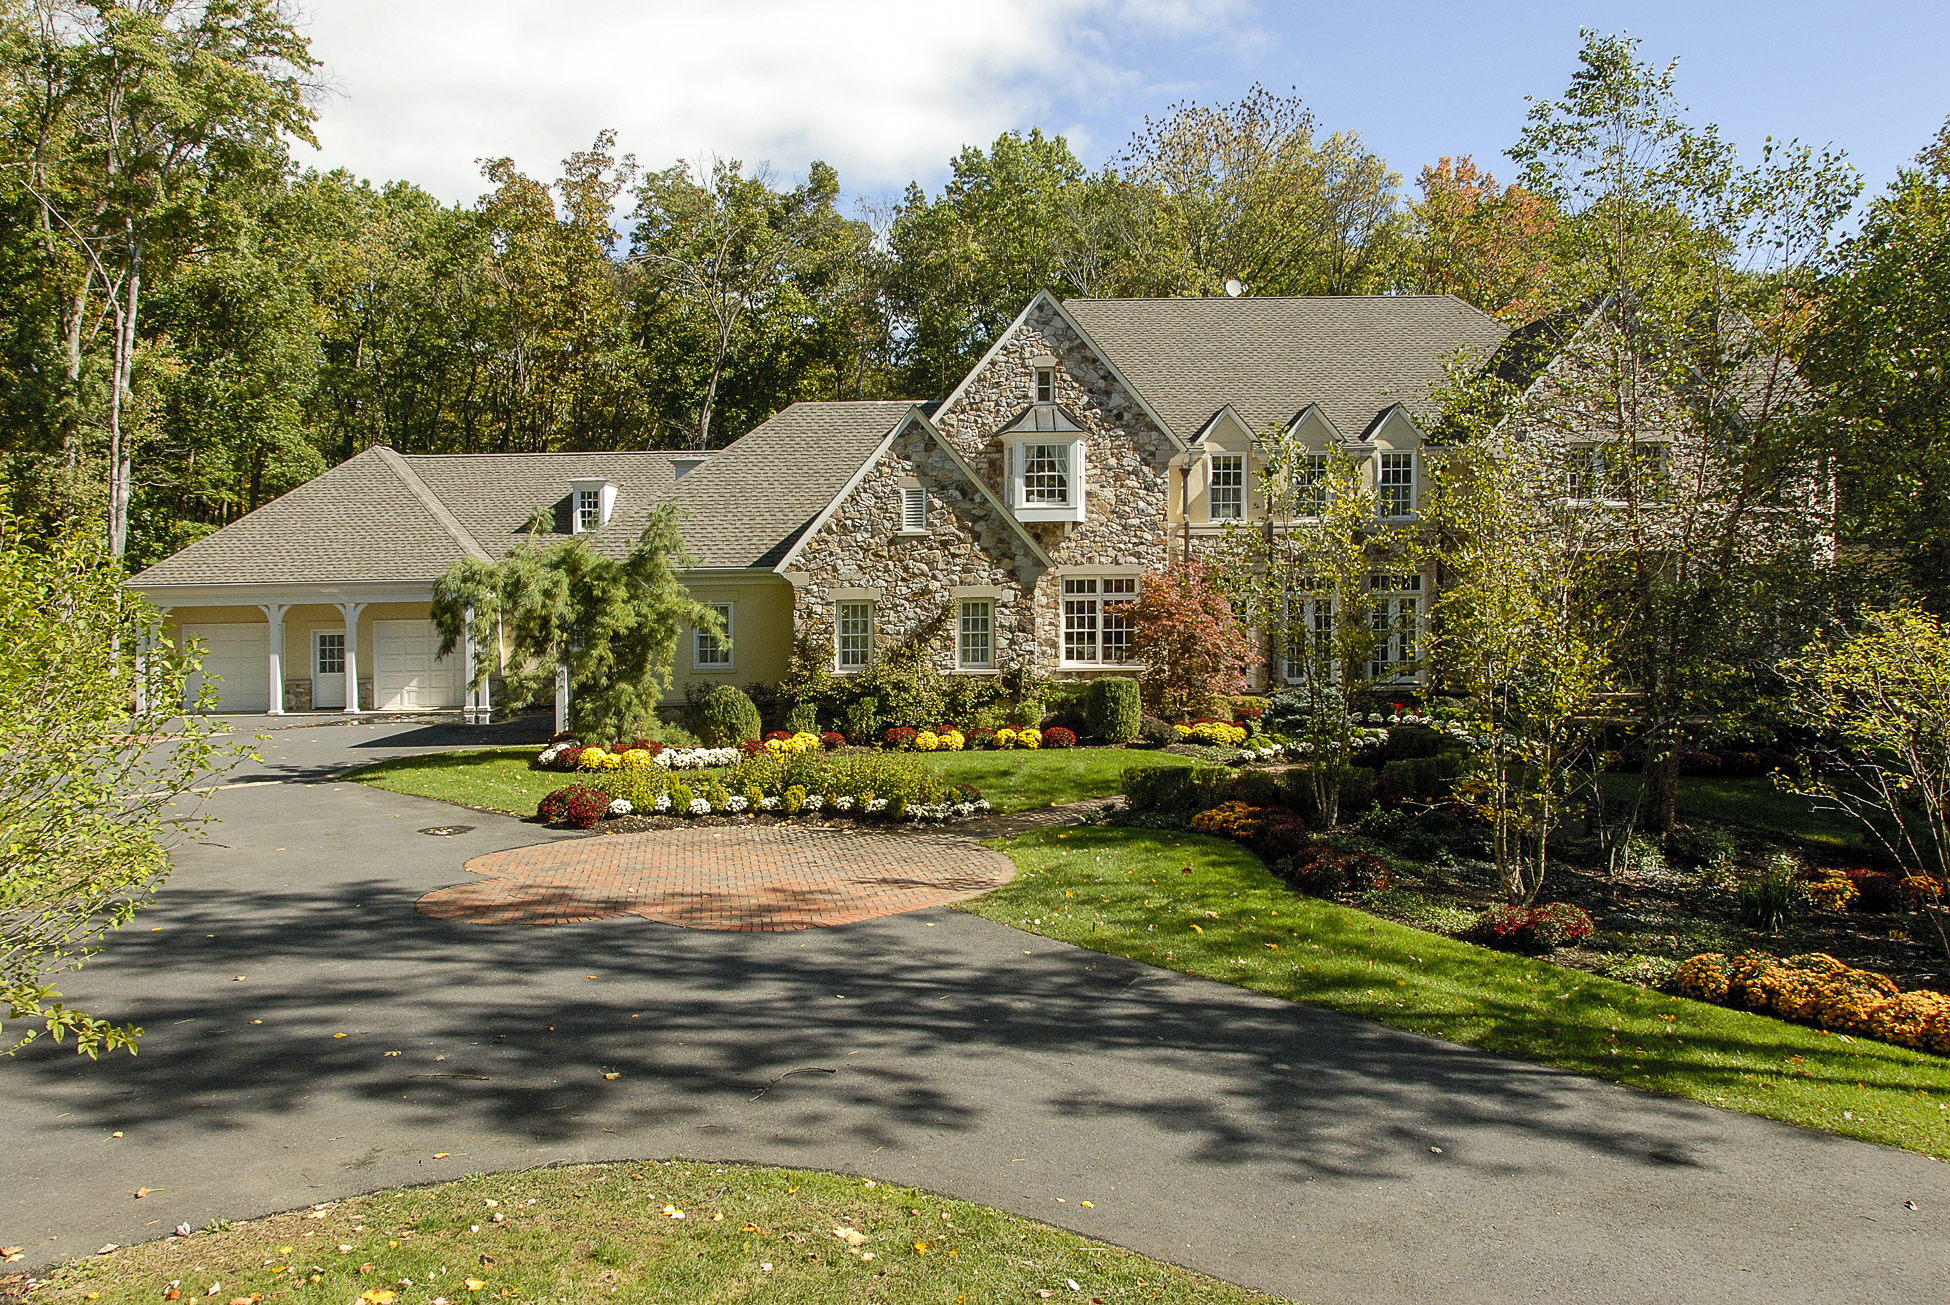 一戸建て のために 売買 アット Magnificent Manor Home in Princeton's Coveted Rushbrook 27 Running Cedar Road Princeton, ニュージャージー 08540 アメリカ合衆国